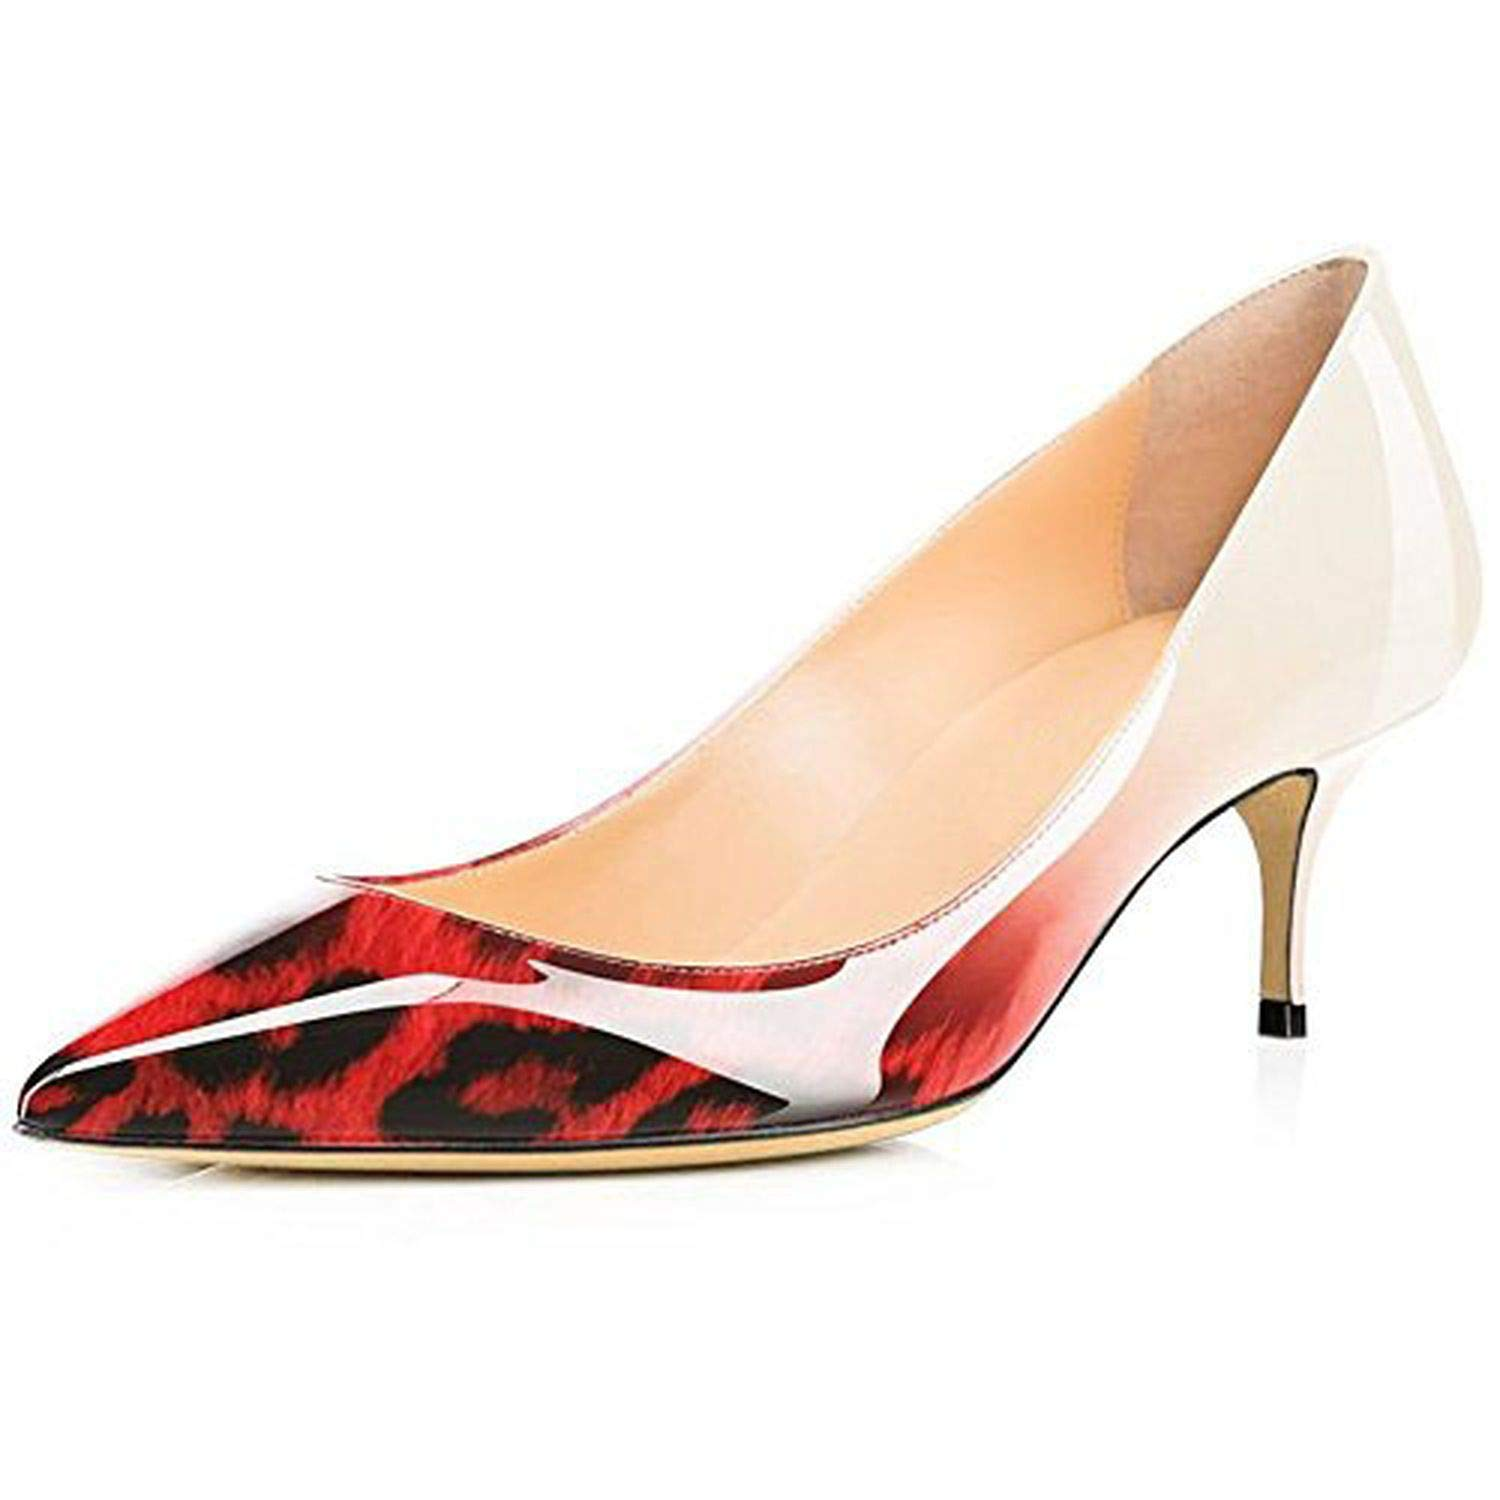 Red Leopard Youthern Woman Heels Big Size Pumps shoes Sexy Pointed Toe High Heels Wedding Bridal shoes